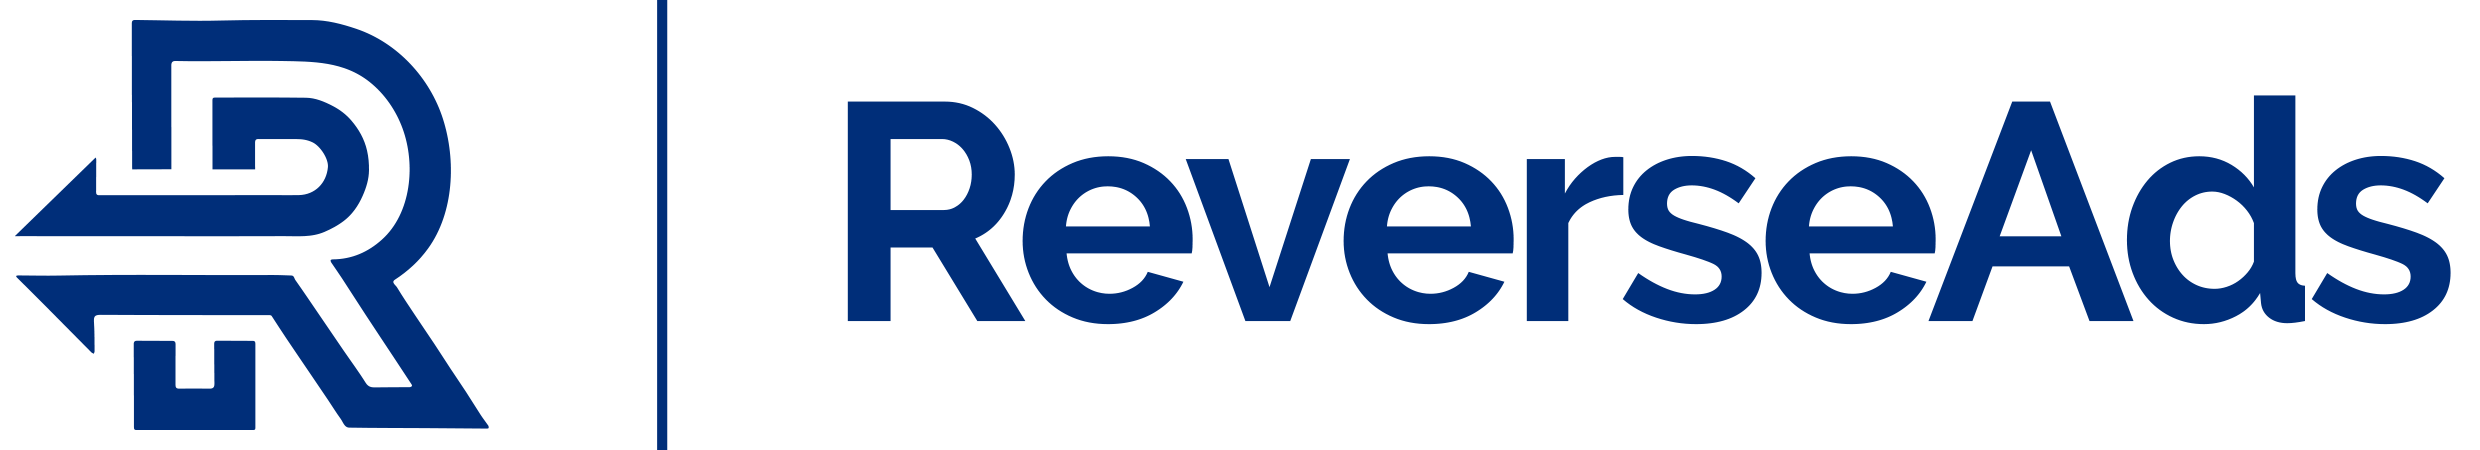 ReverseAds Announces Launch Of The World's First True Alternative To Search Advertising